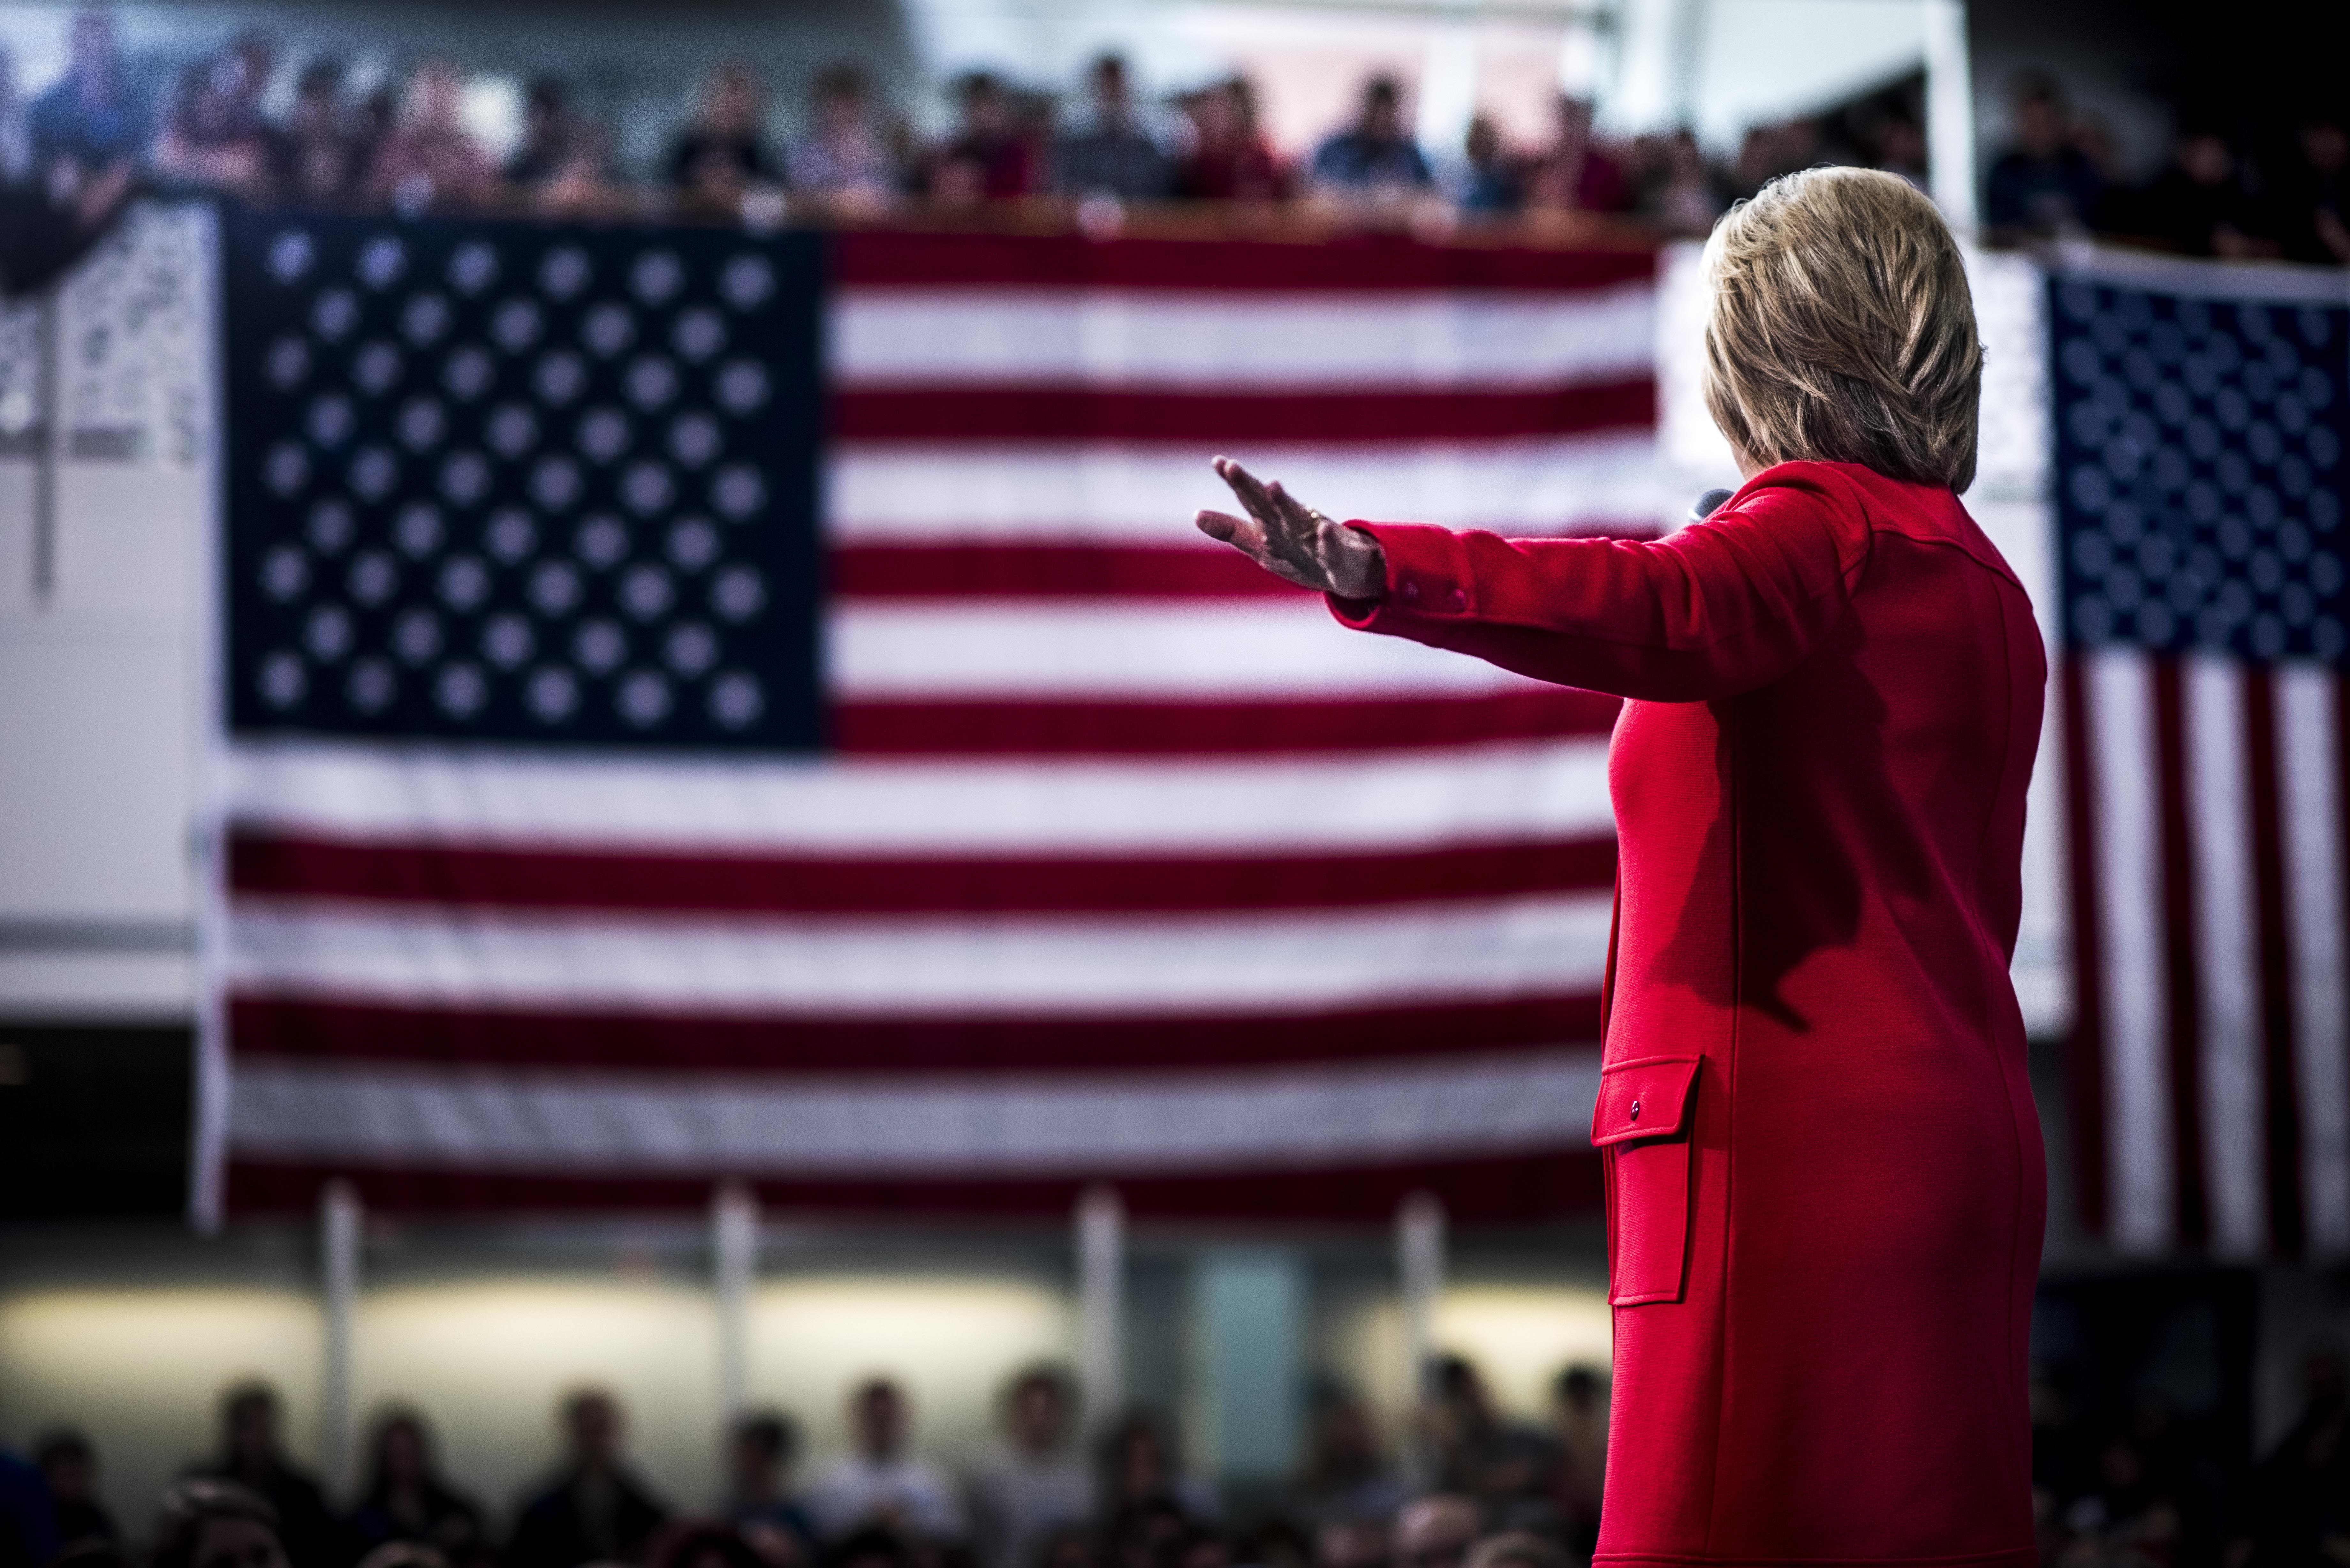 Hillary Clinton speaking to Iowa voters at Iowa State University in Ames, Iowa on Jan. 30, 2016.